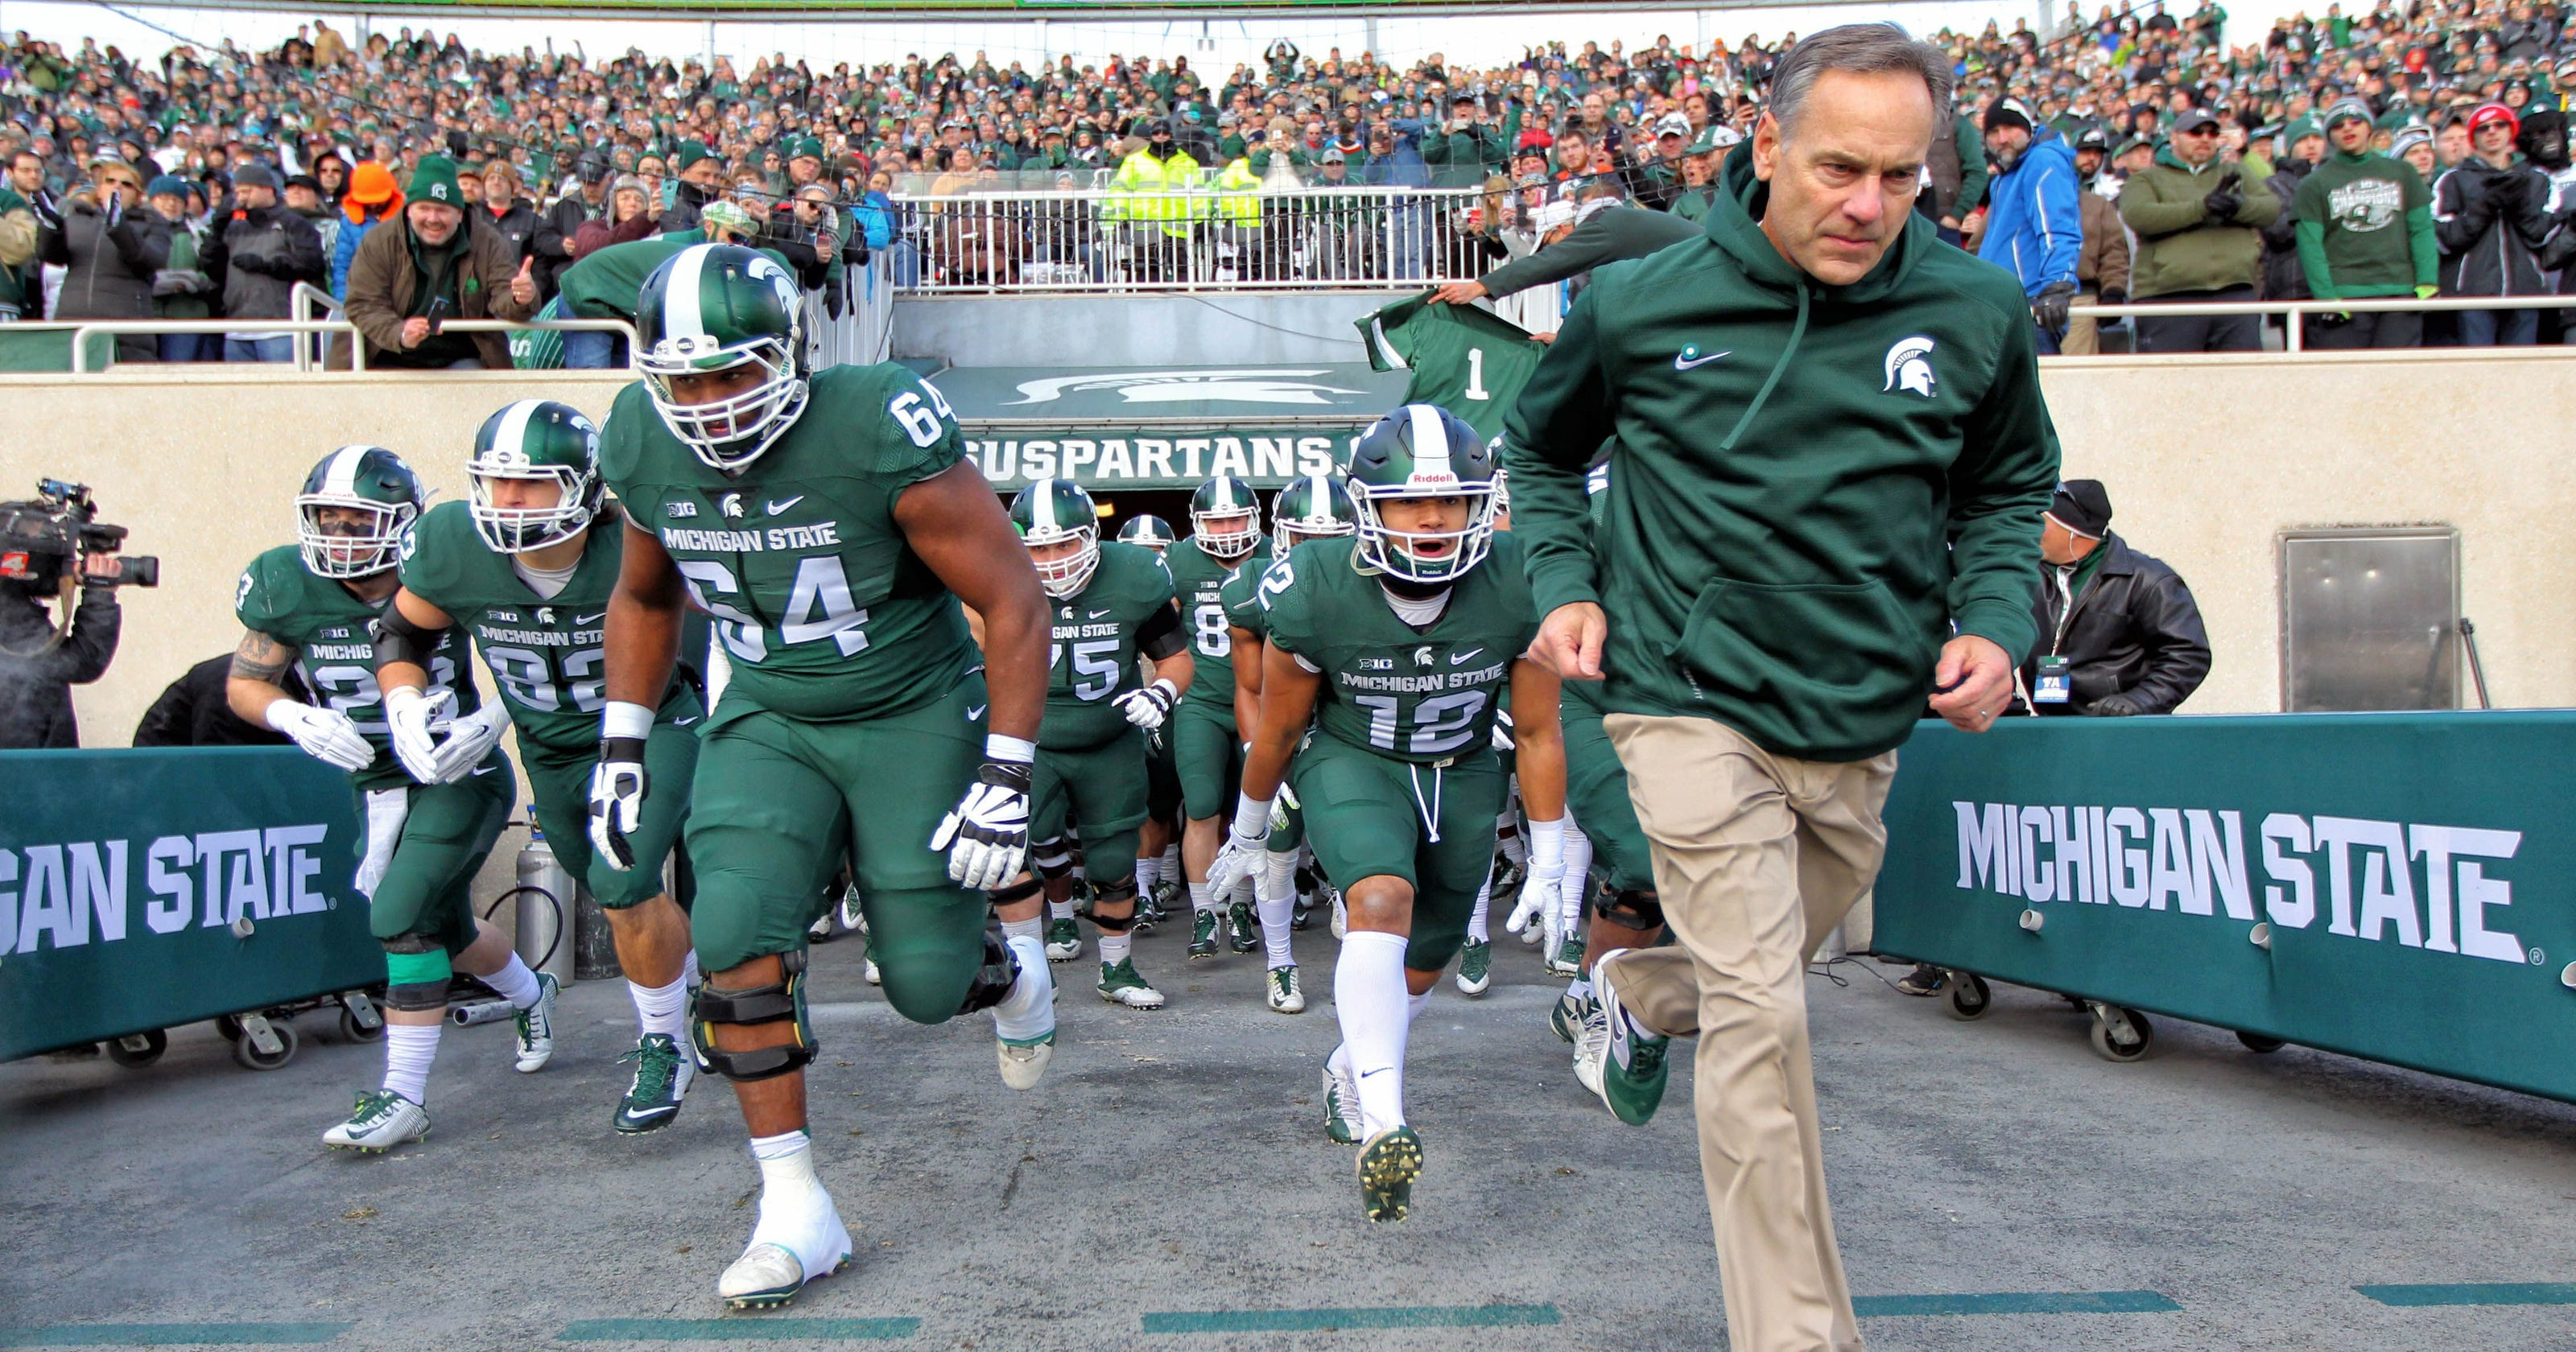 Plane Issues Force Michigan State Football Team To Bus To